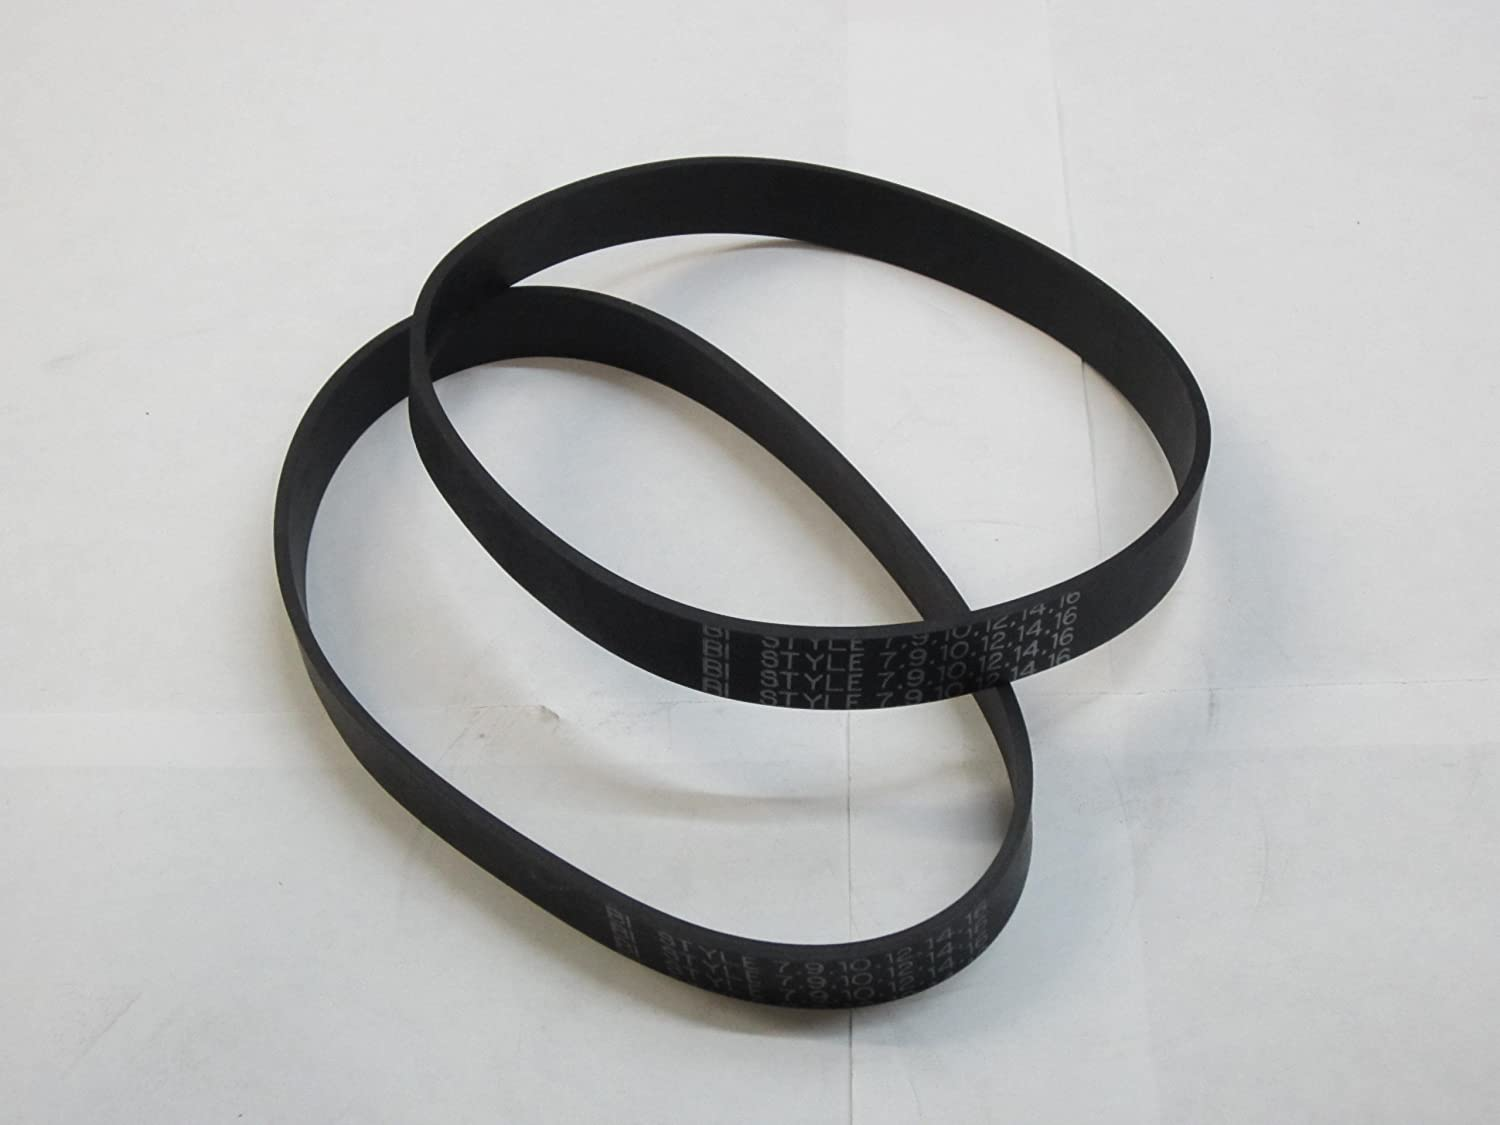 Bissell 2 BISSELL ORIGINAL BELTS TO FIT 7, 9, 10, 12,14 VACUUMS at Sears.com